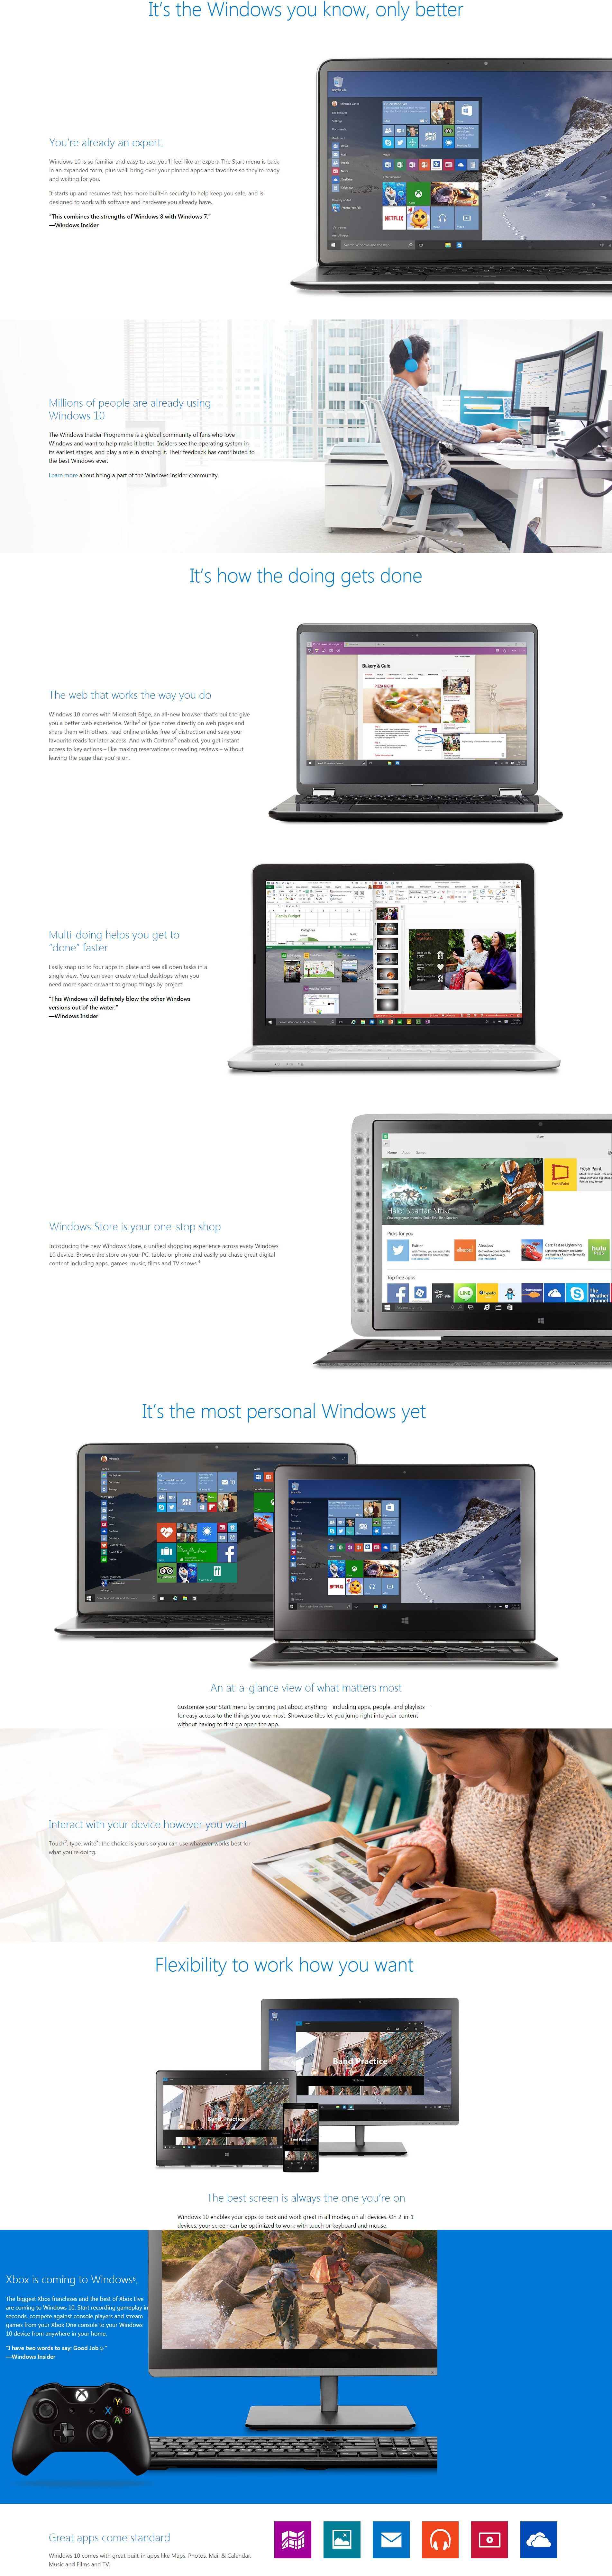 A large marketing image providing additional information about the product Microsoft Windows 10 Home OEM 64-Bit DVD - Additional alt info not provided